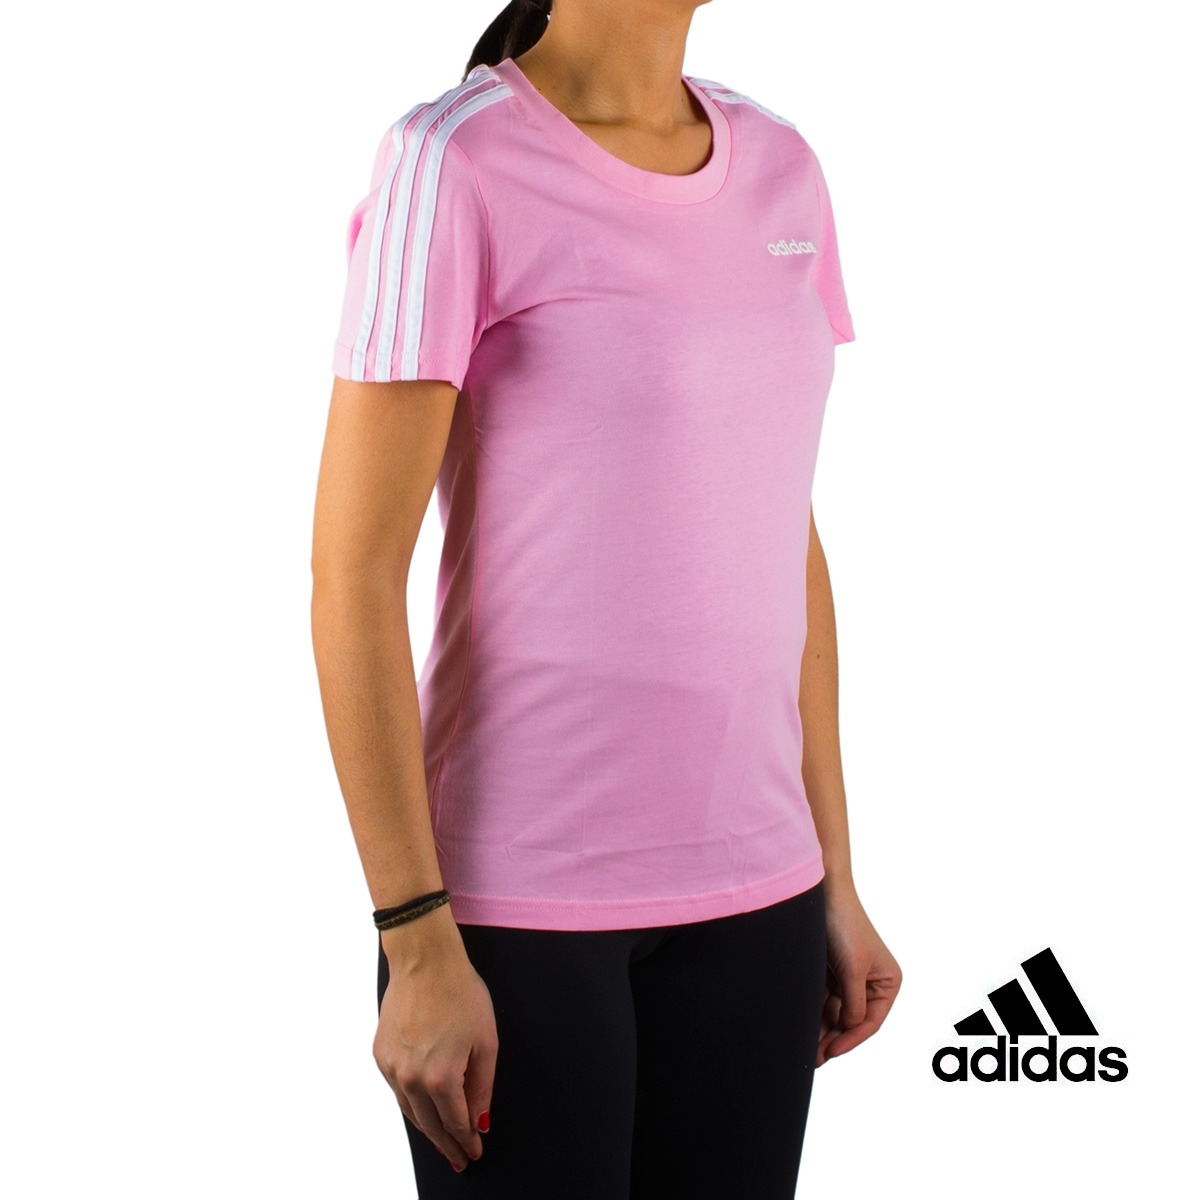 Adidas Camiseta Essentials 3 stripes slim tee Rosa true pink white Mujer